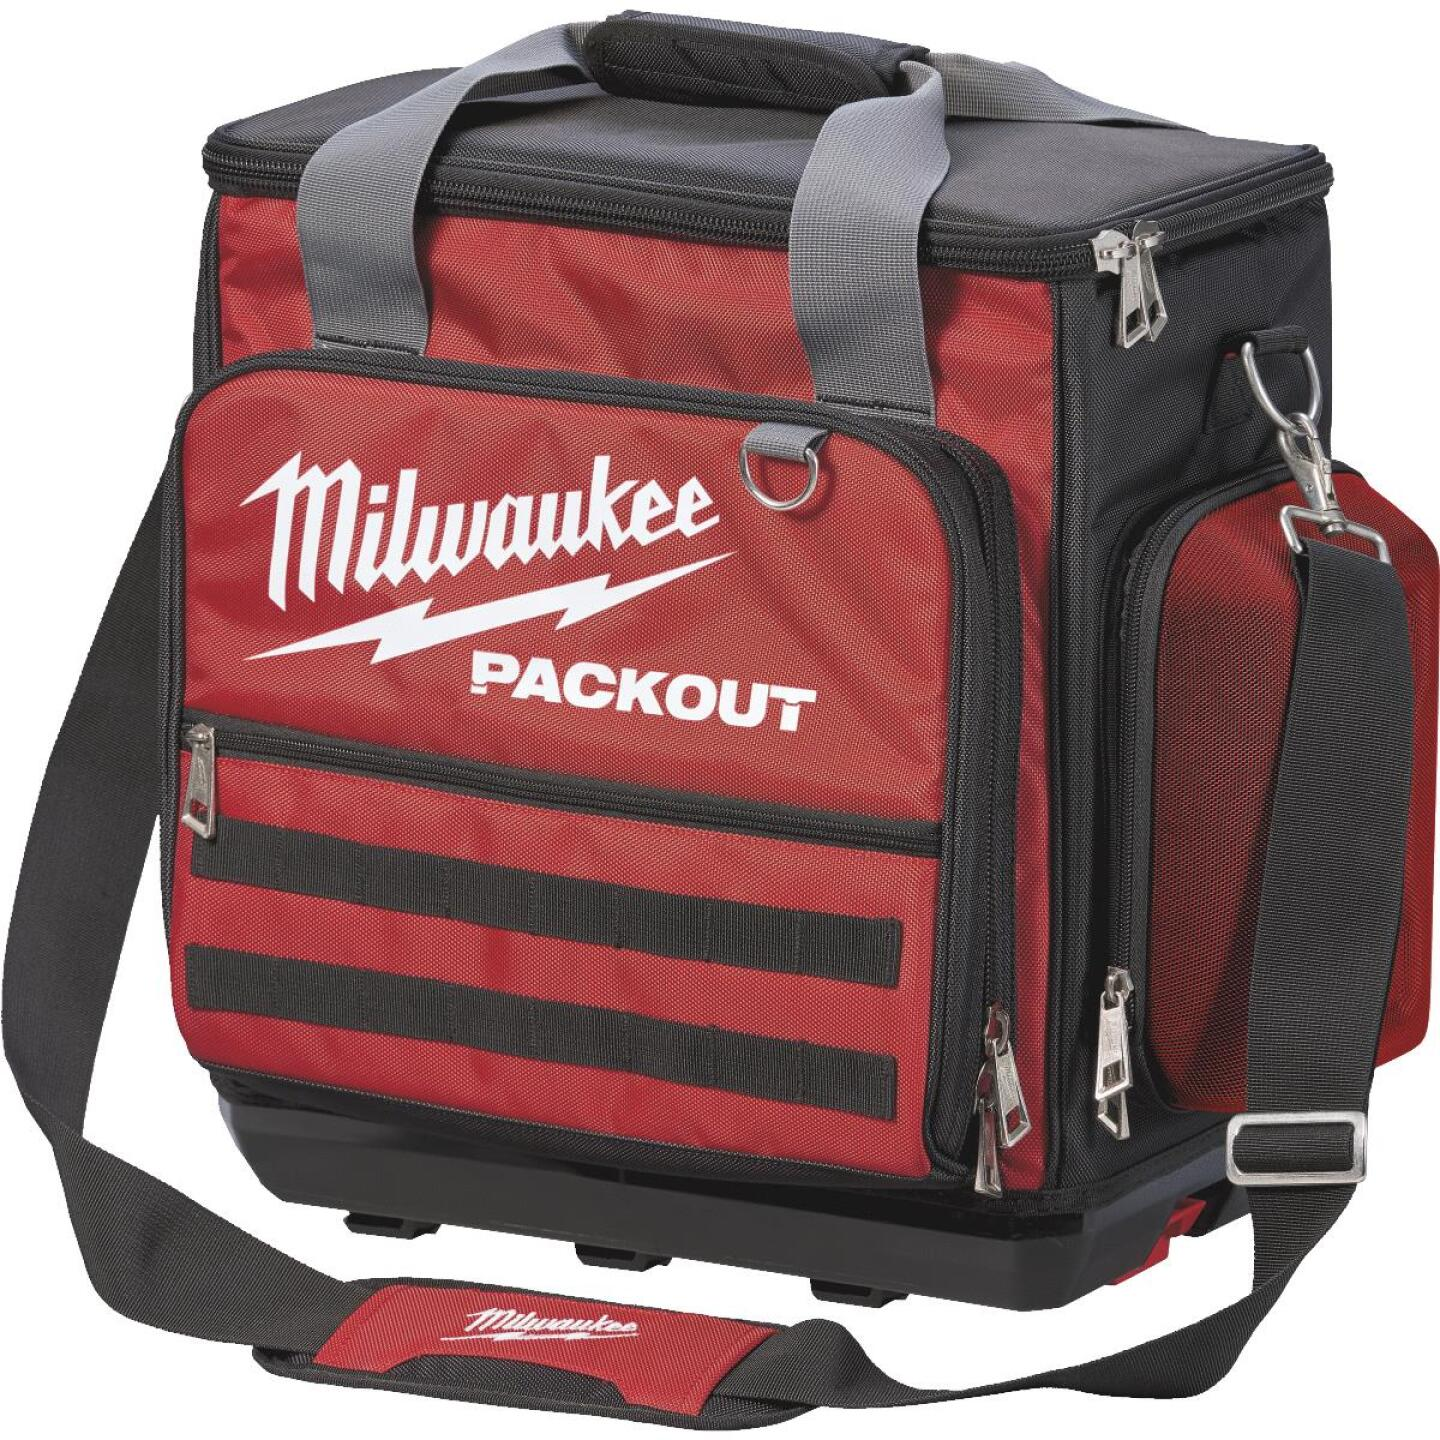 Milwaukee PACKOUT 58-Pocket 18 In. Technician's Tool Bag Image 1